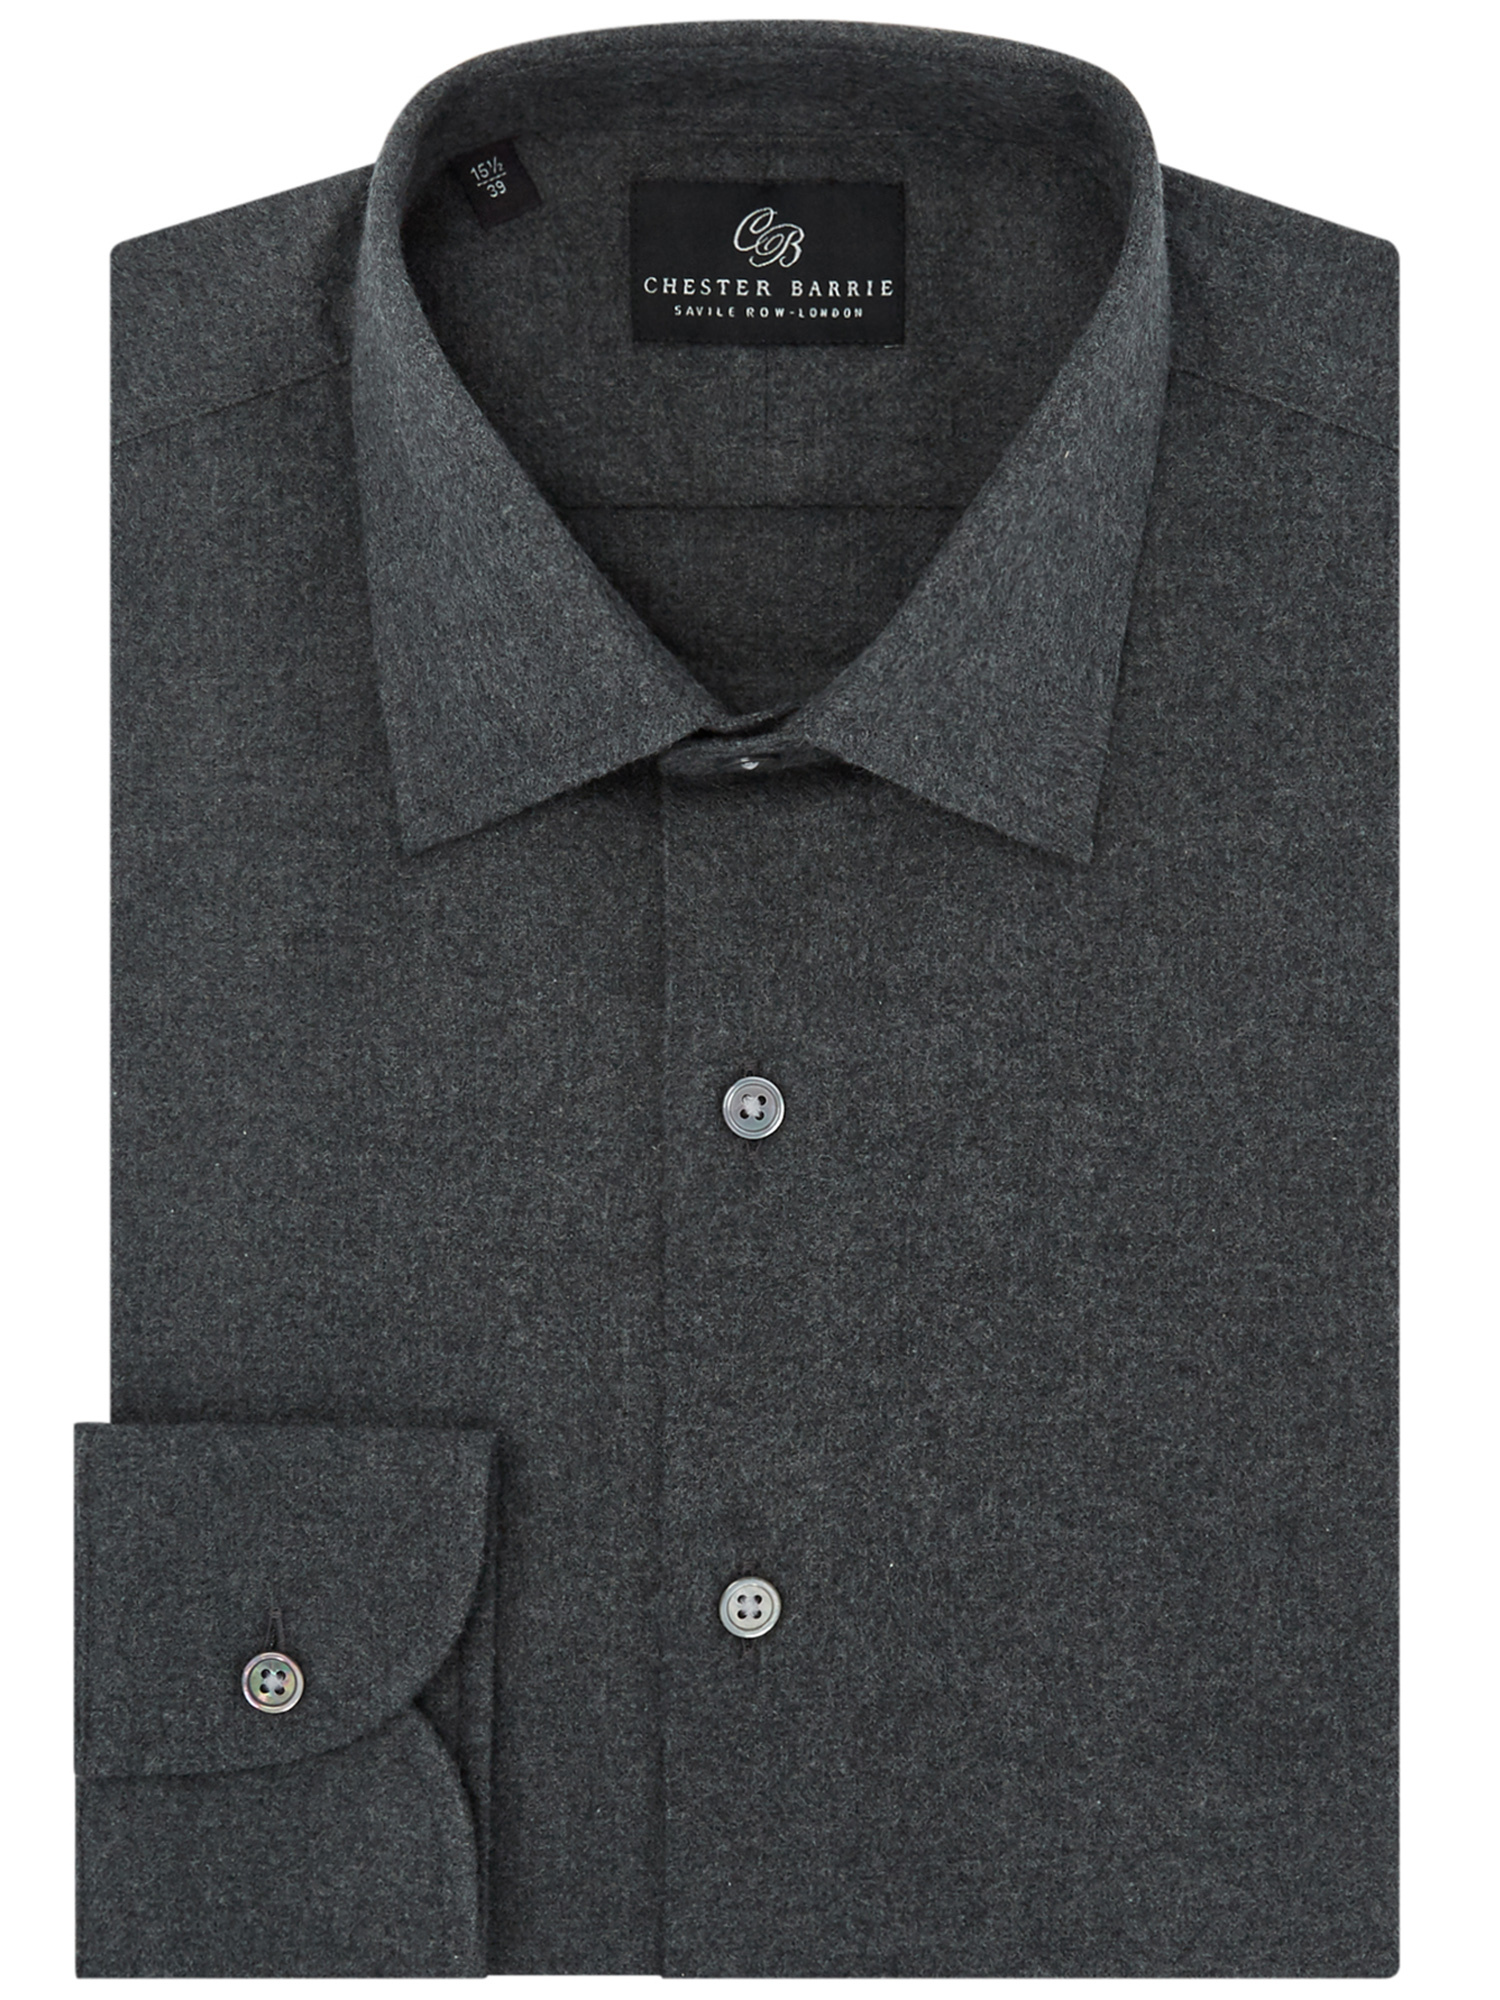 CHESTER BARRIE GREY FLANNEL SHIRT